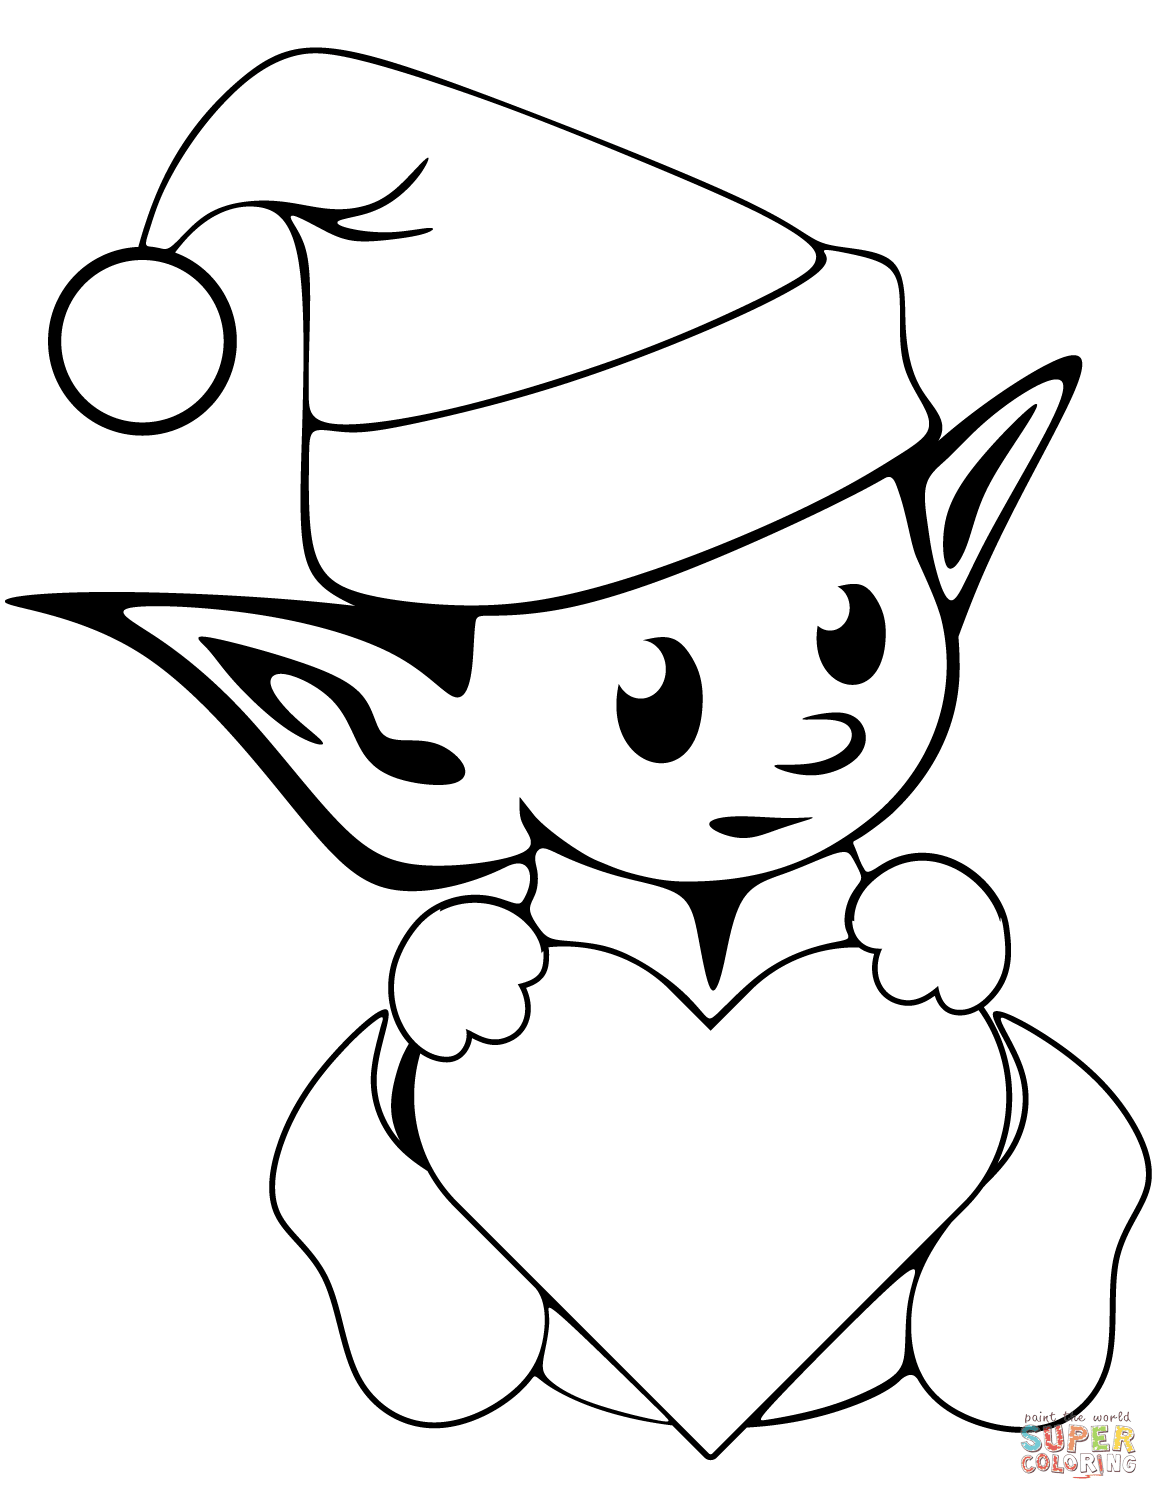 elf coloring coloring page kids for fantasy image photos elves elf coloring